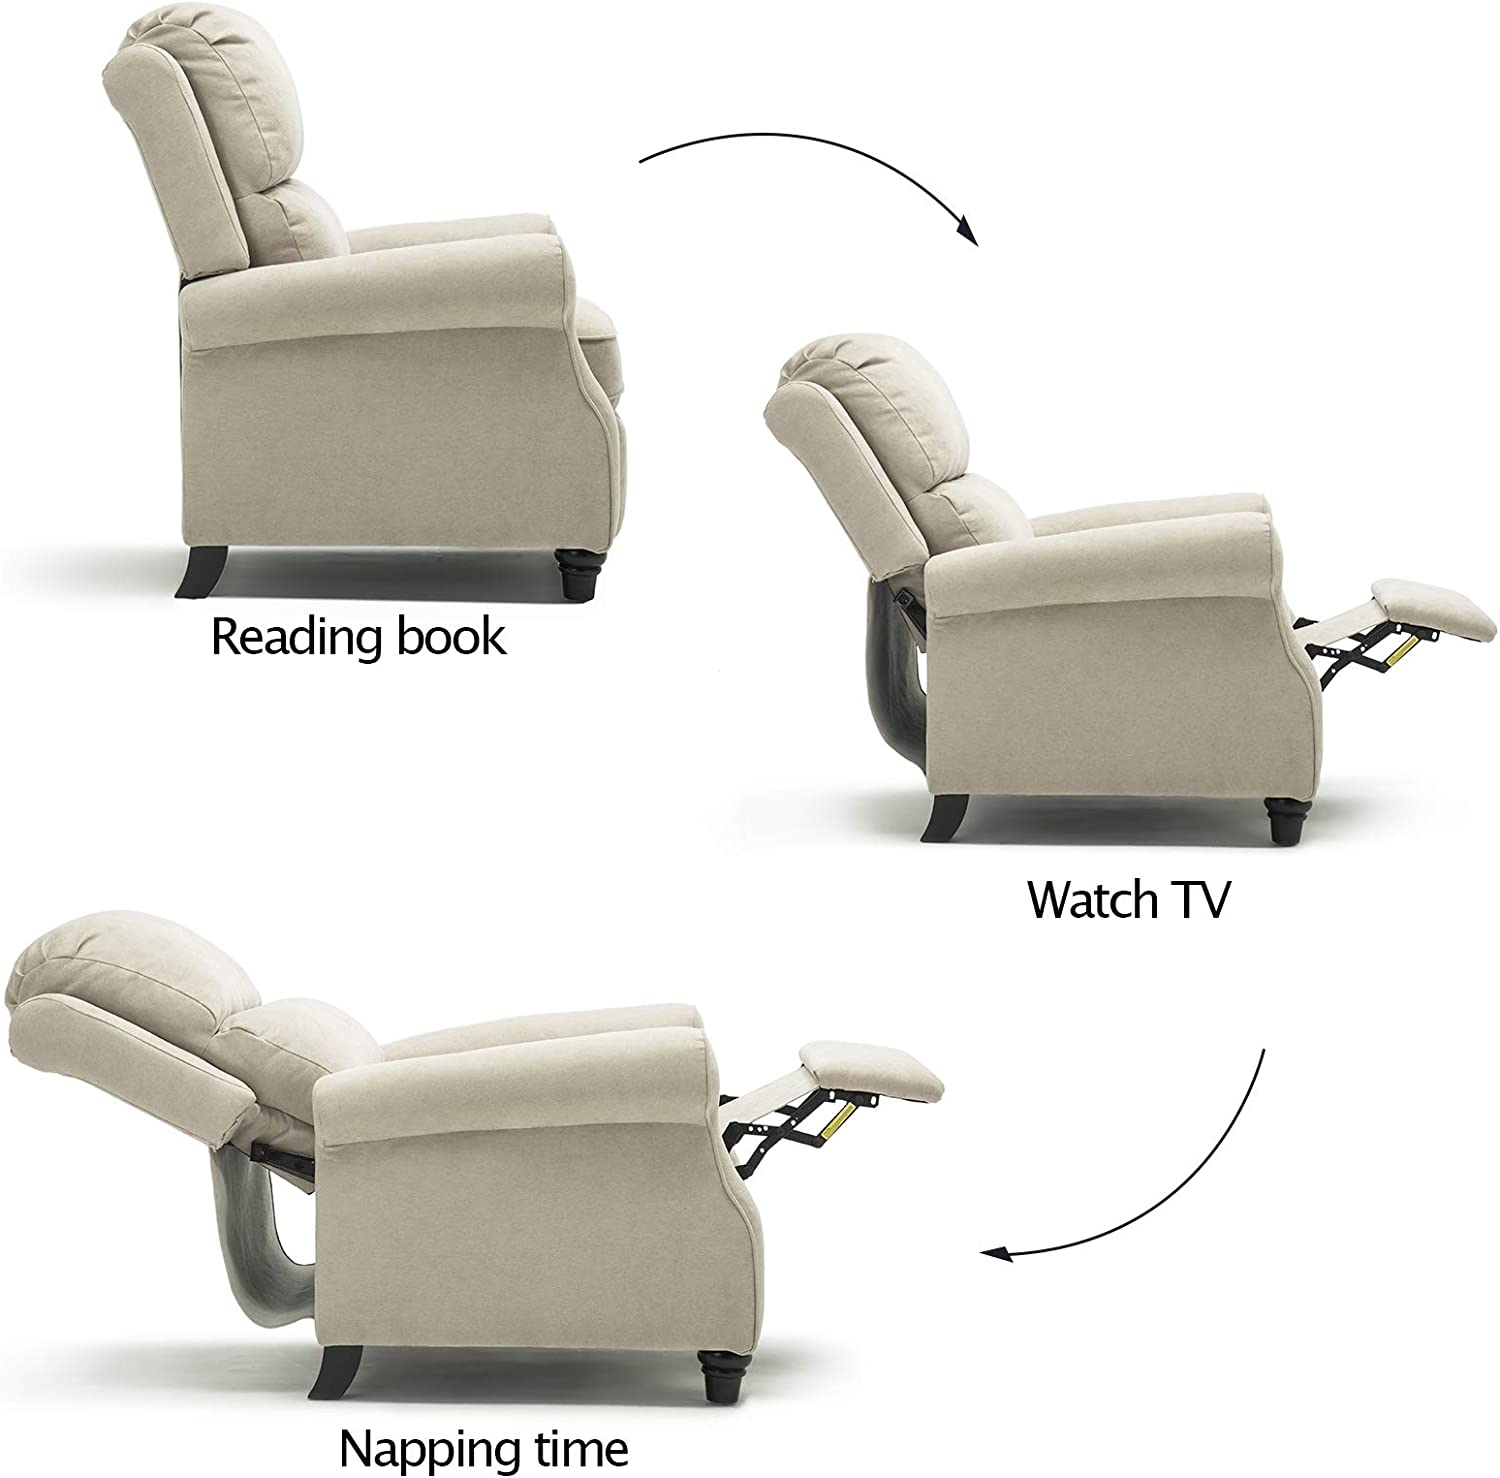 ANJ Push Back Recliner Chair with Elegant Roll Arm for Living Room, Thickness Cushion Sofa Home Theater Seating (Buff White)